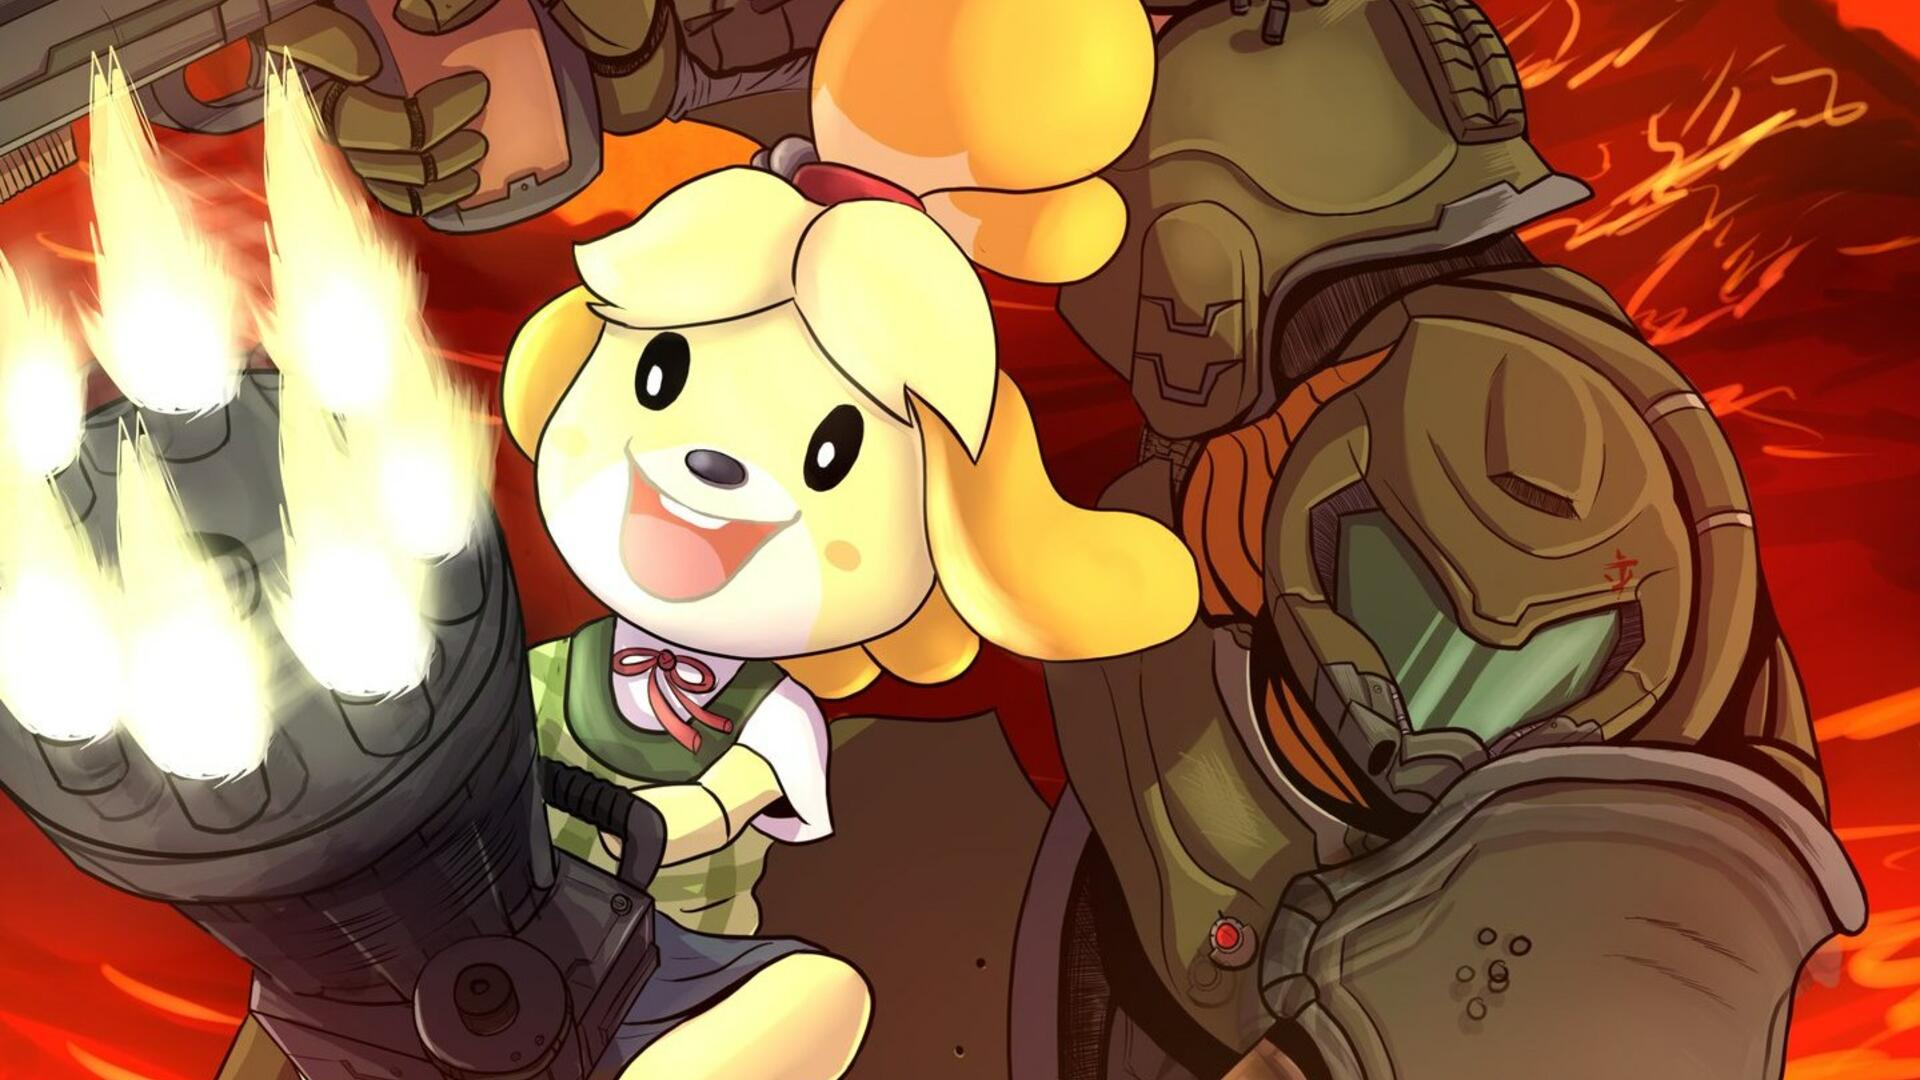 Doomguy And Isabelle Are Teaming Up In Some Adorable Crossover Art